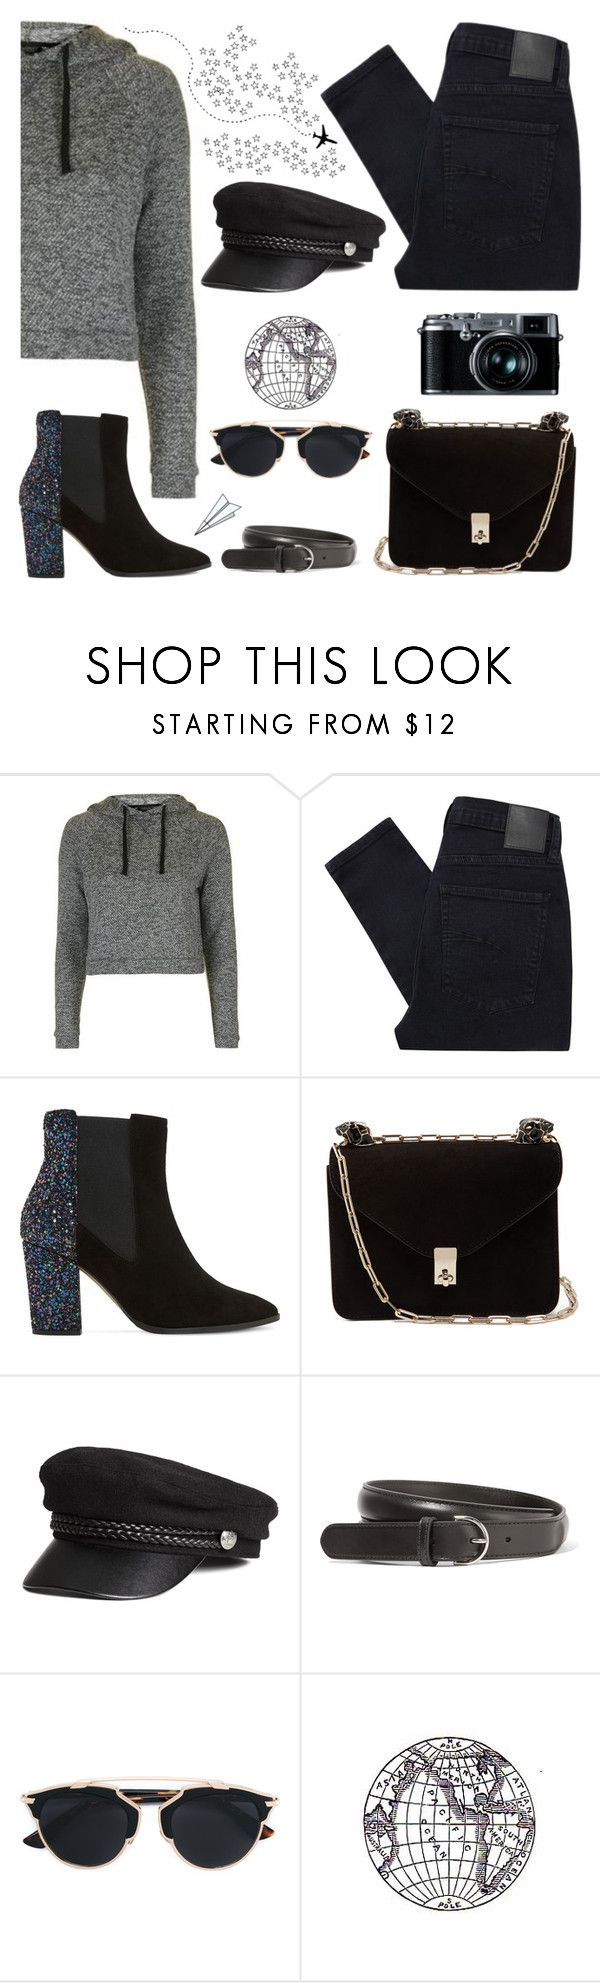 """Bring It Back"" by apollinariya-664 ❤ liked on Polyvore featuring Topshop, Nobody Denim, Dune, Valentino, Acne Studios, Christian Dior, Plane, Fujifilm, YSL and airportstyle"